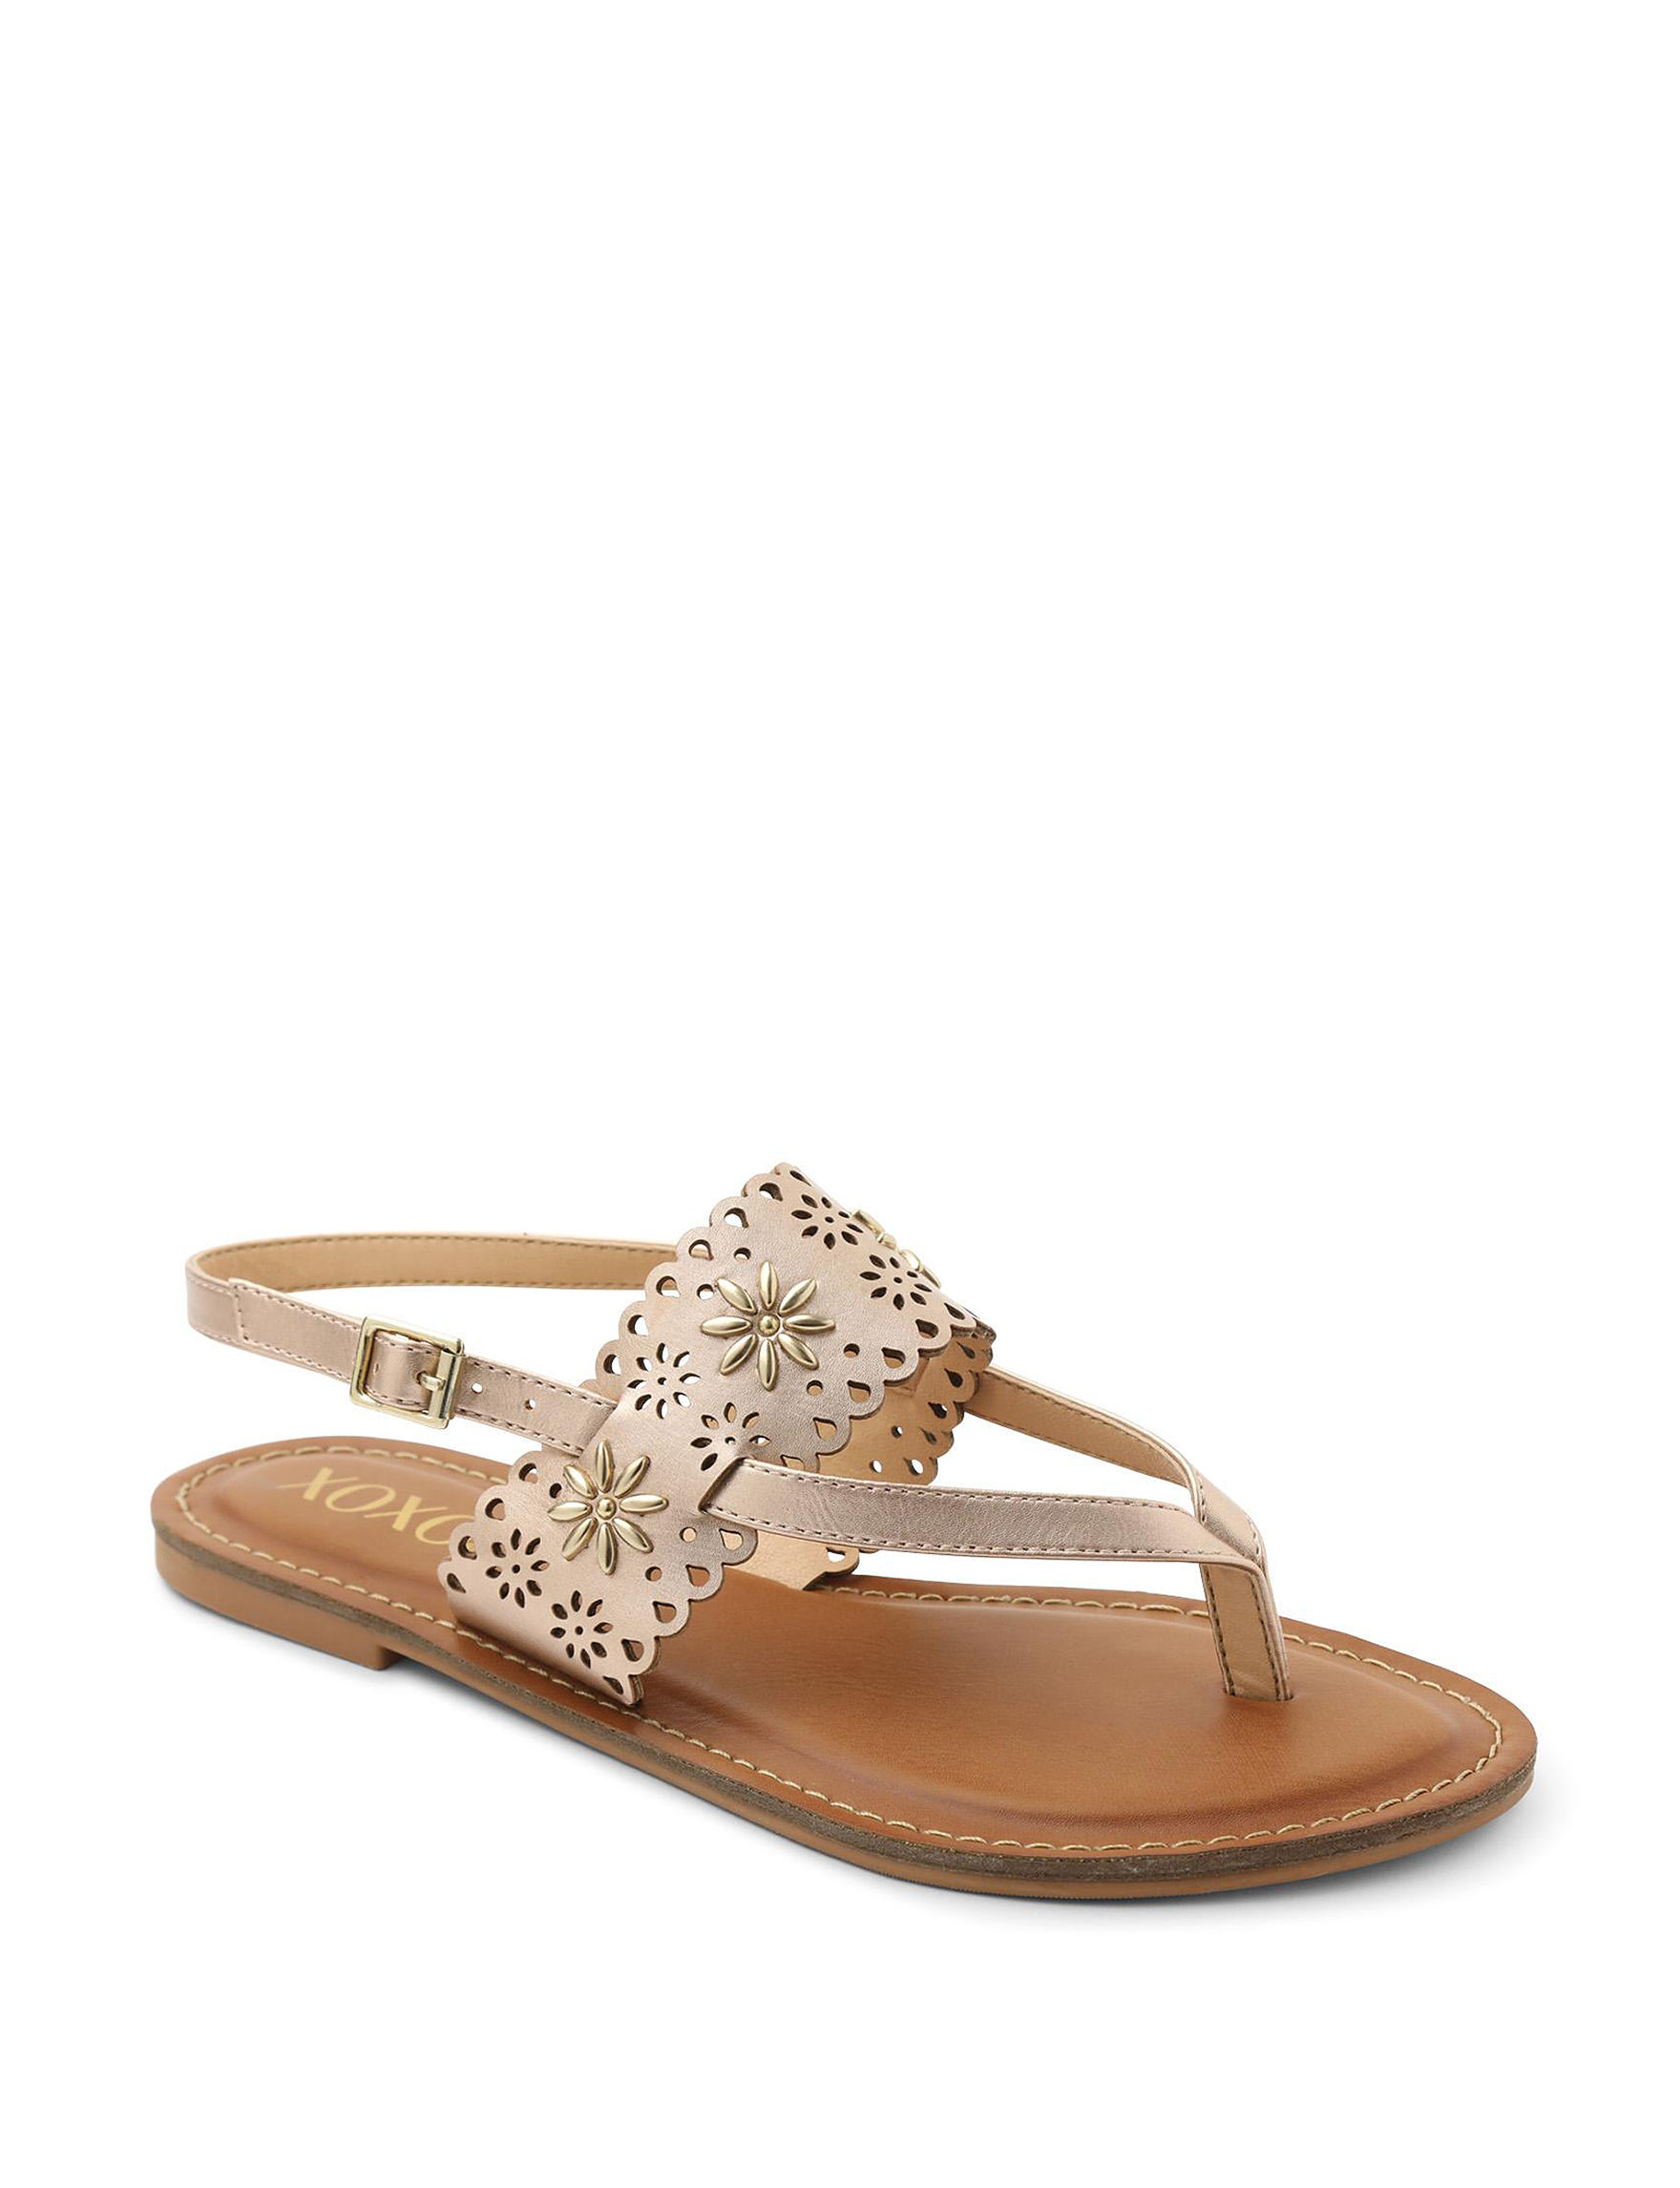 XOXO Rose Gold Flat Sandals